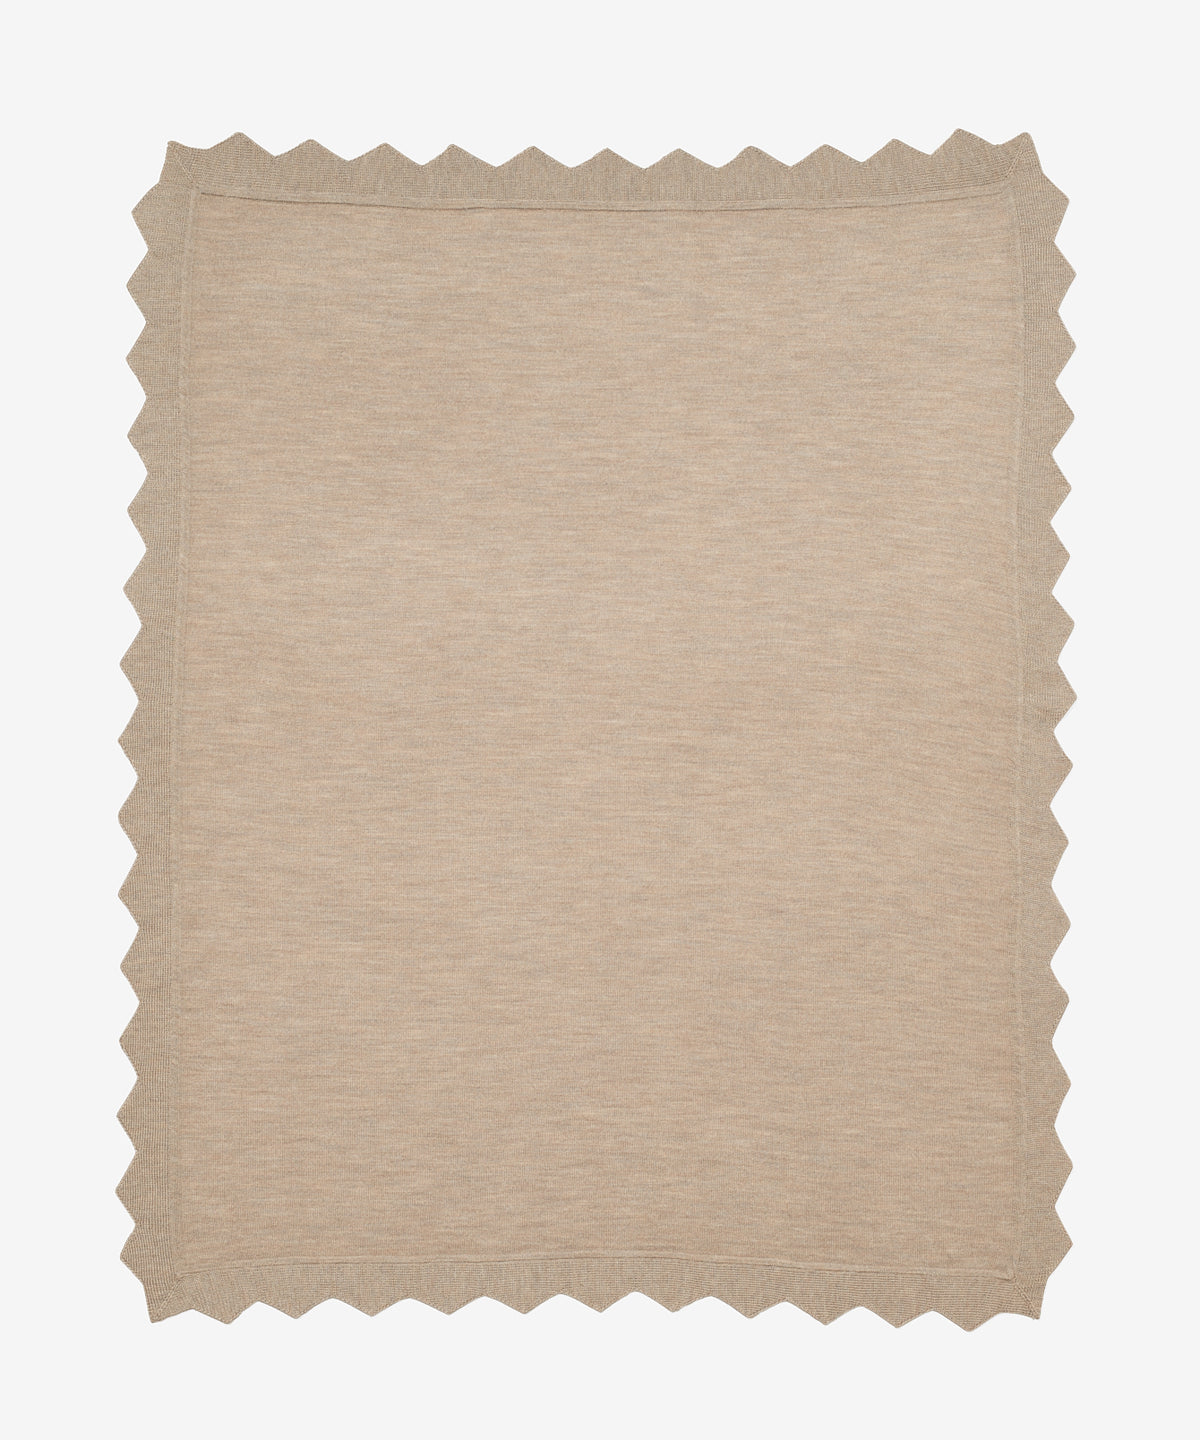 Graham Blanket, Tan